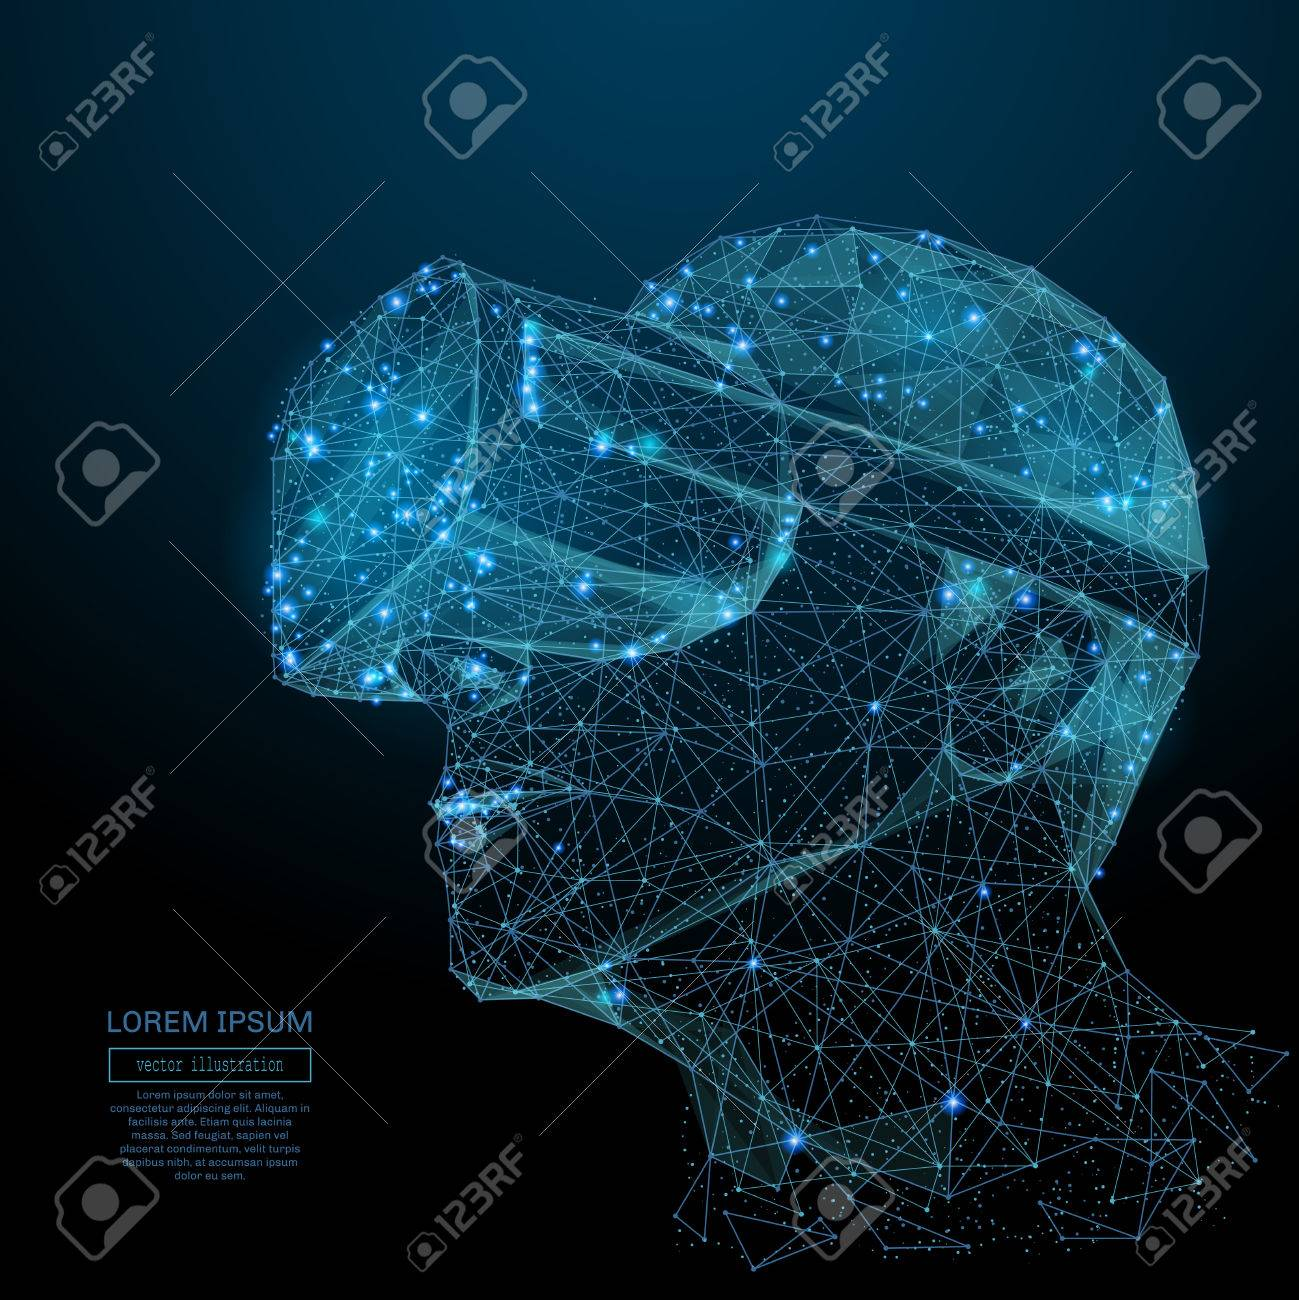 Abstract image of a virtual reality in the form of a starry sky or space, consisting of points, lines, and shapes in the form of planets, stars and the universe. Vector technology concept - 81787820